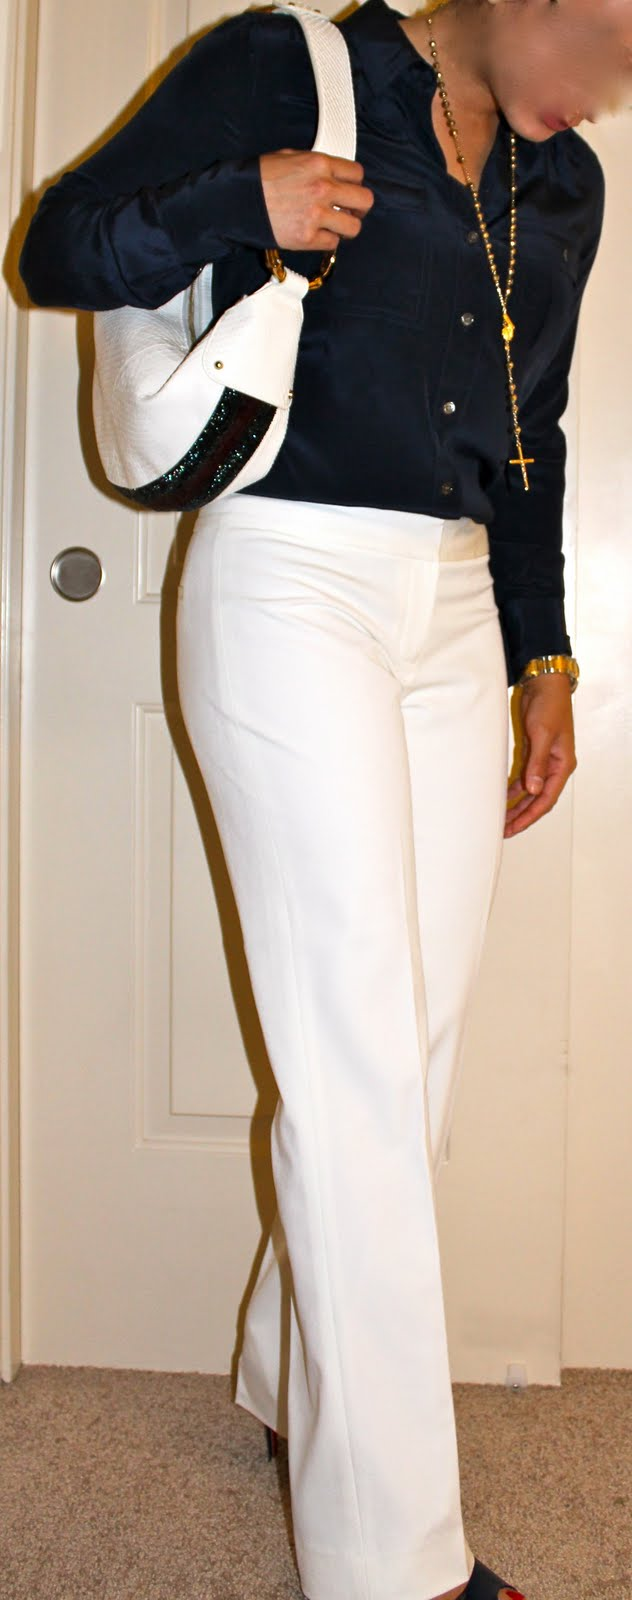 work attire with gold cross